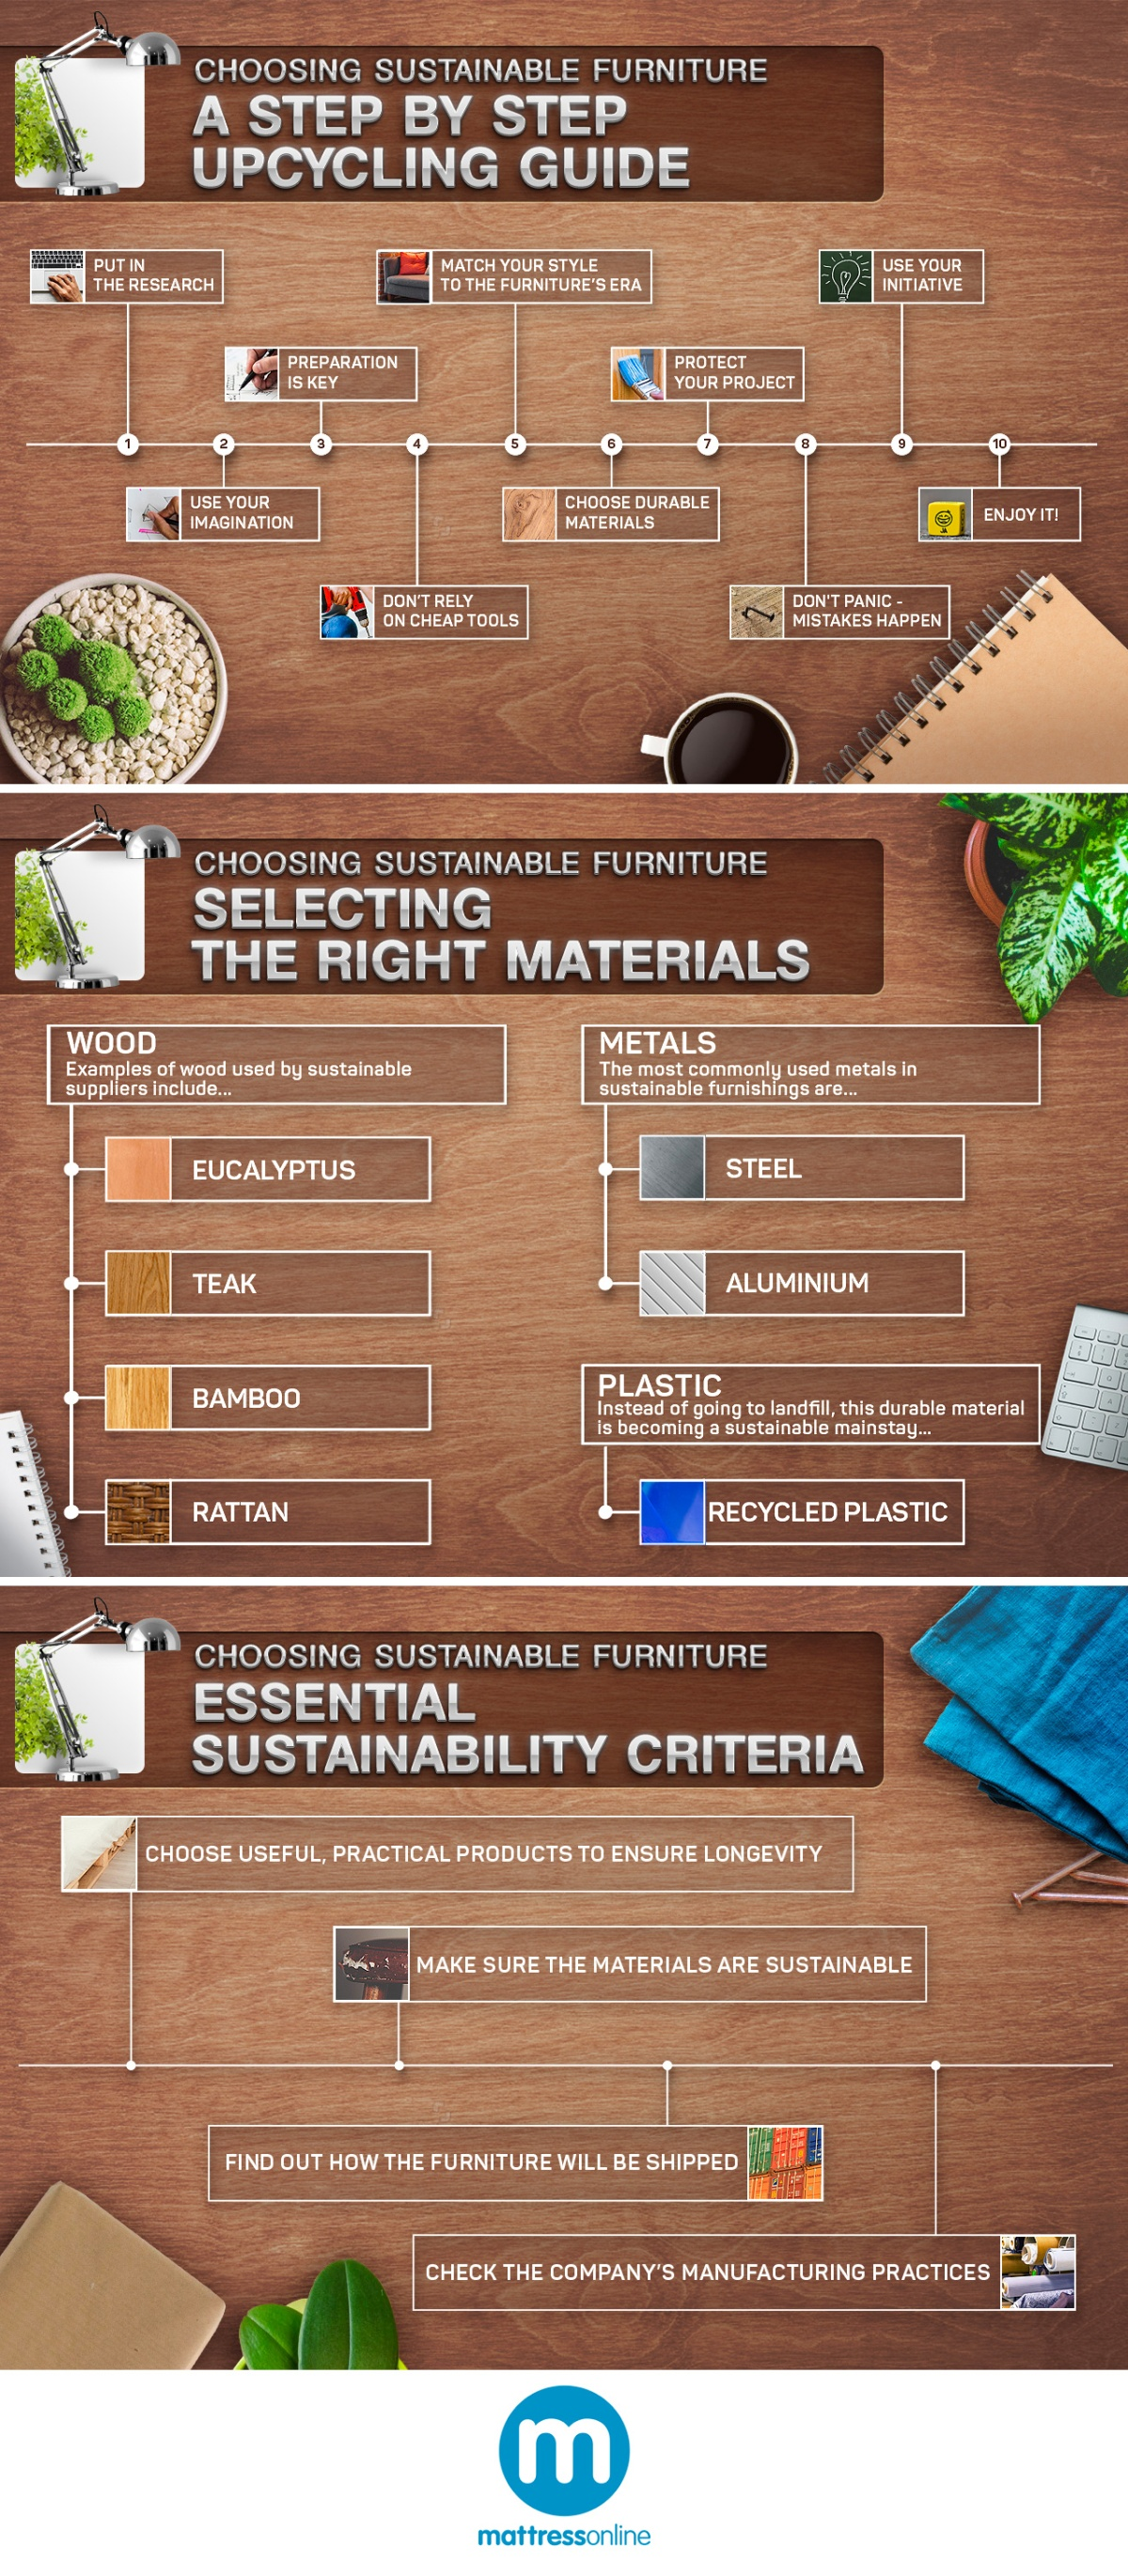 Sustainable Furnishings - How to Reuse, Renovate and Recycle [Infographic]   ecogreenlove